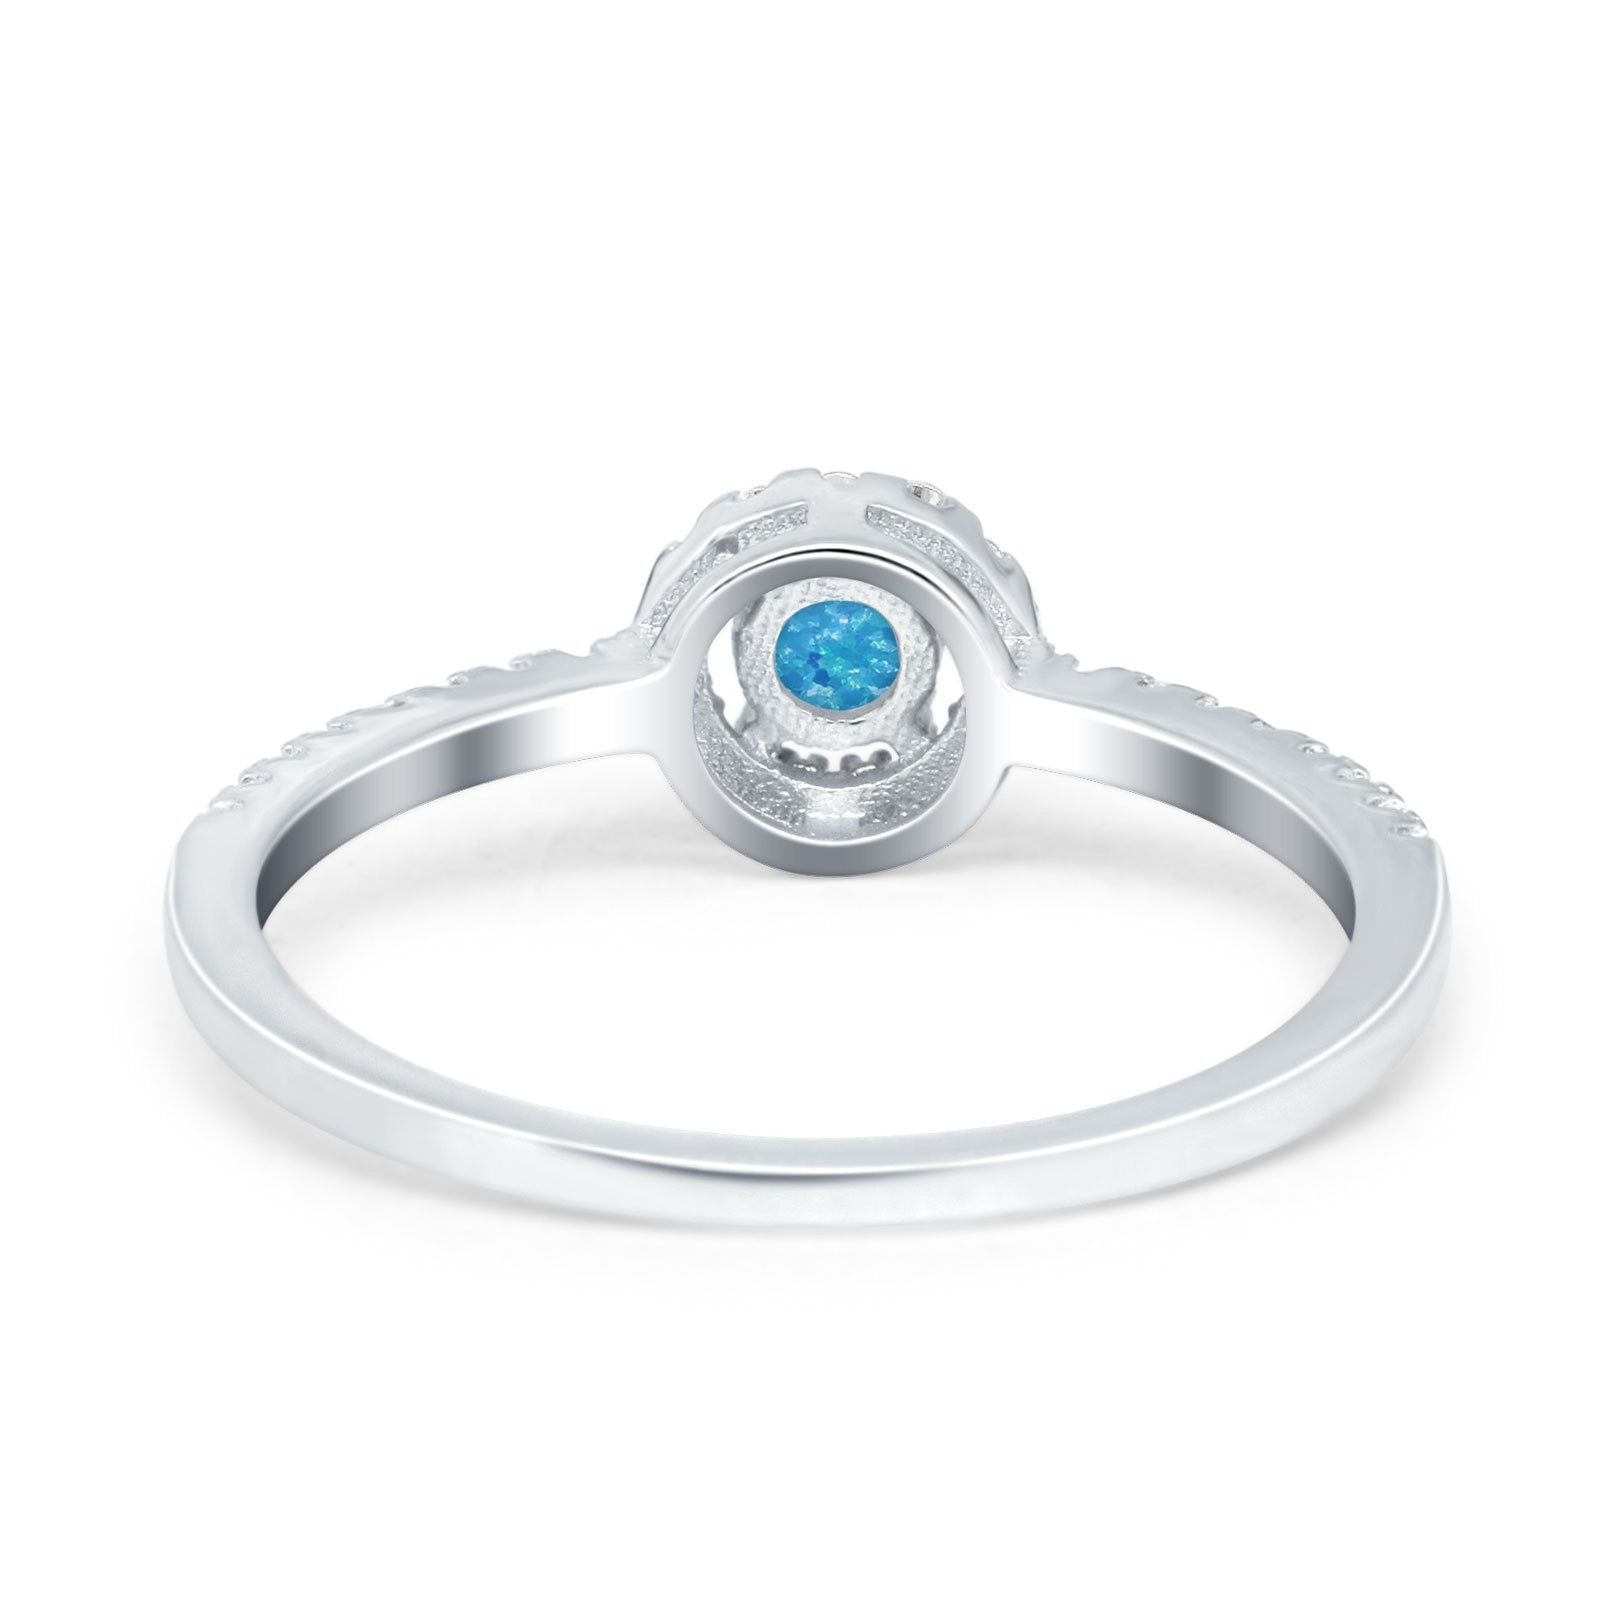 Petite Dainty Halo Ring Round Lab Created Blue Opal 925 Sterling Silver